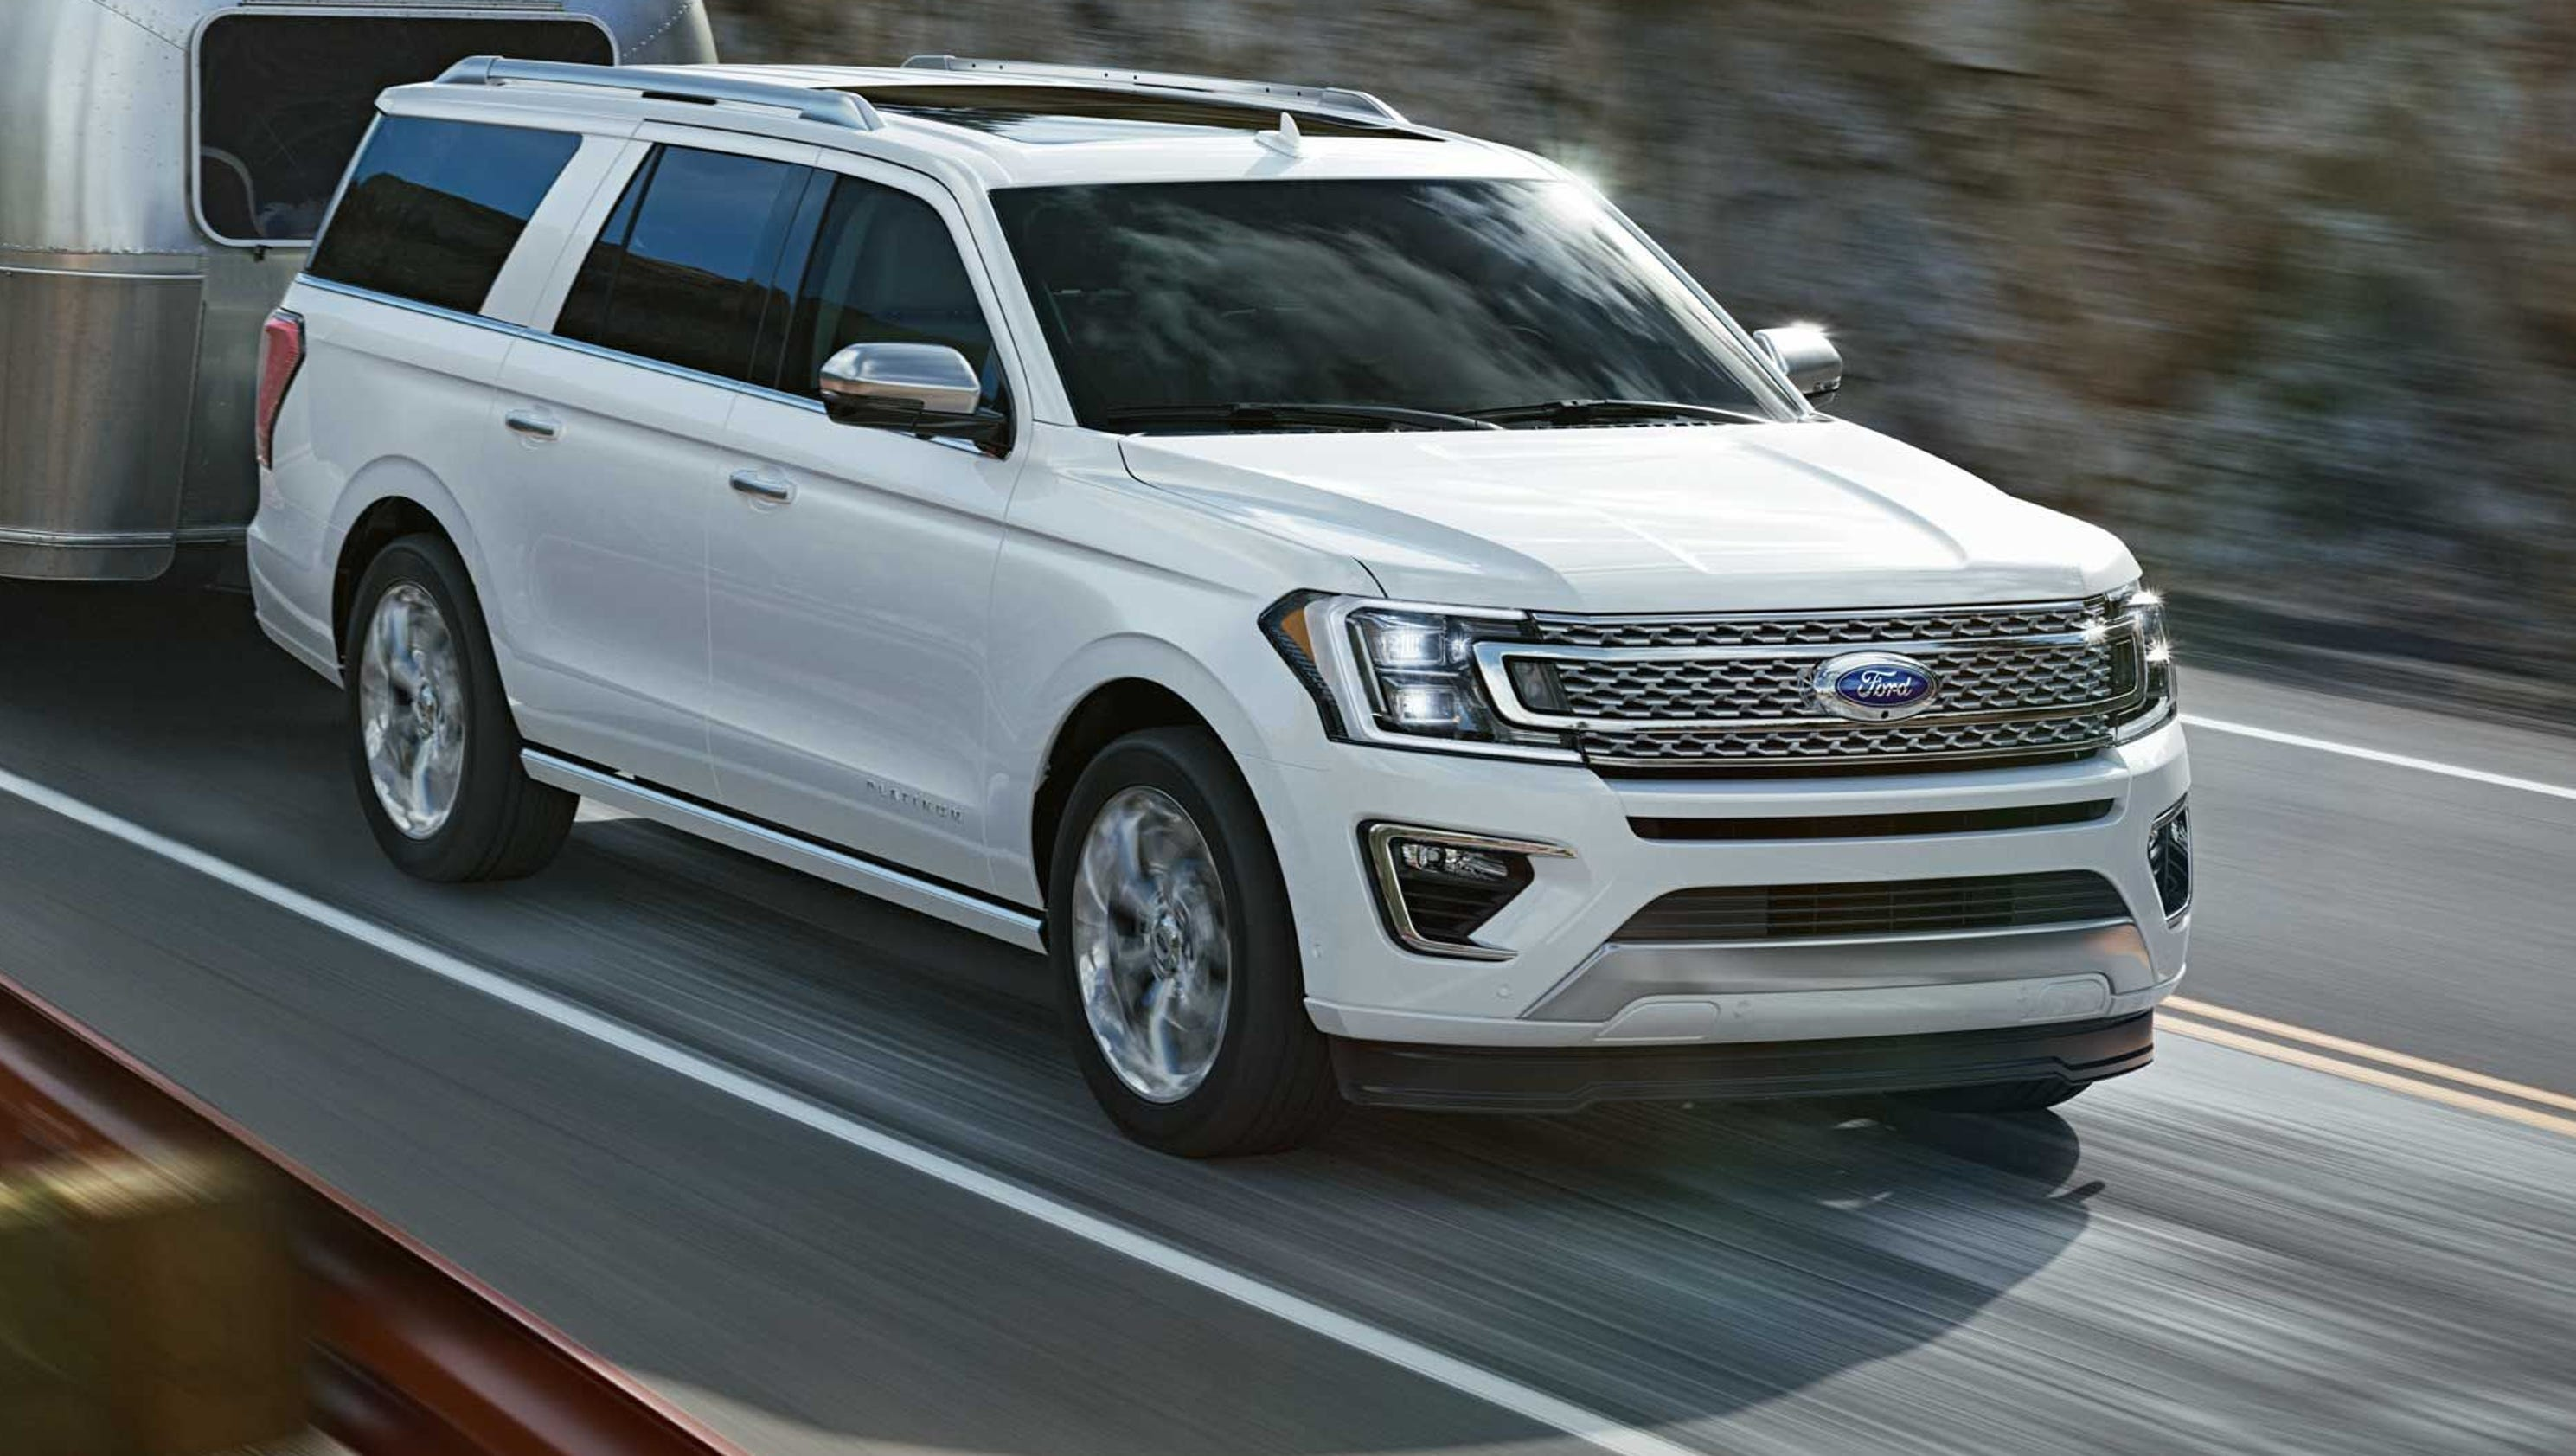 F 2018 Ford Expedition | 2017, 2018, 2019 Ford Price ...